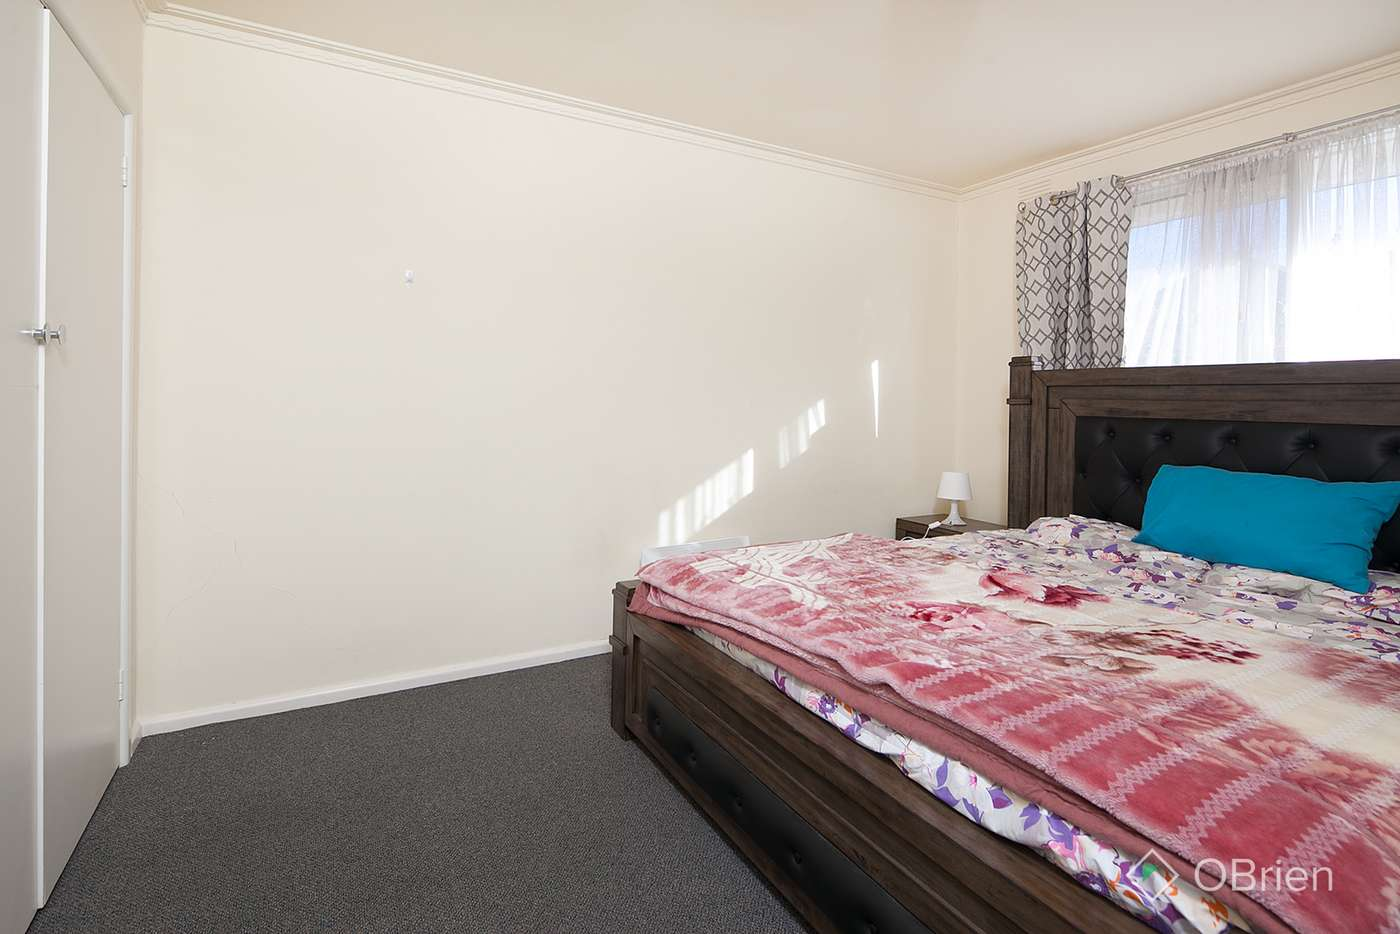 Sixth view of Homely unit listing, 4/35 Herbert Street, Dandenong VIC 3175